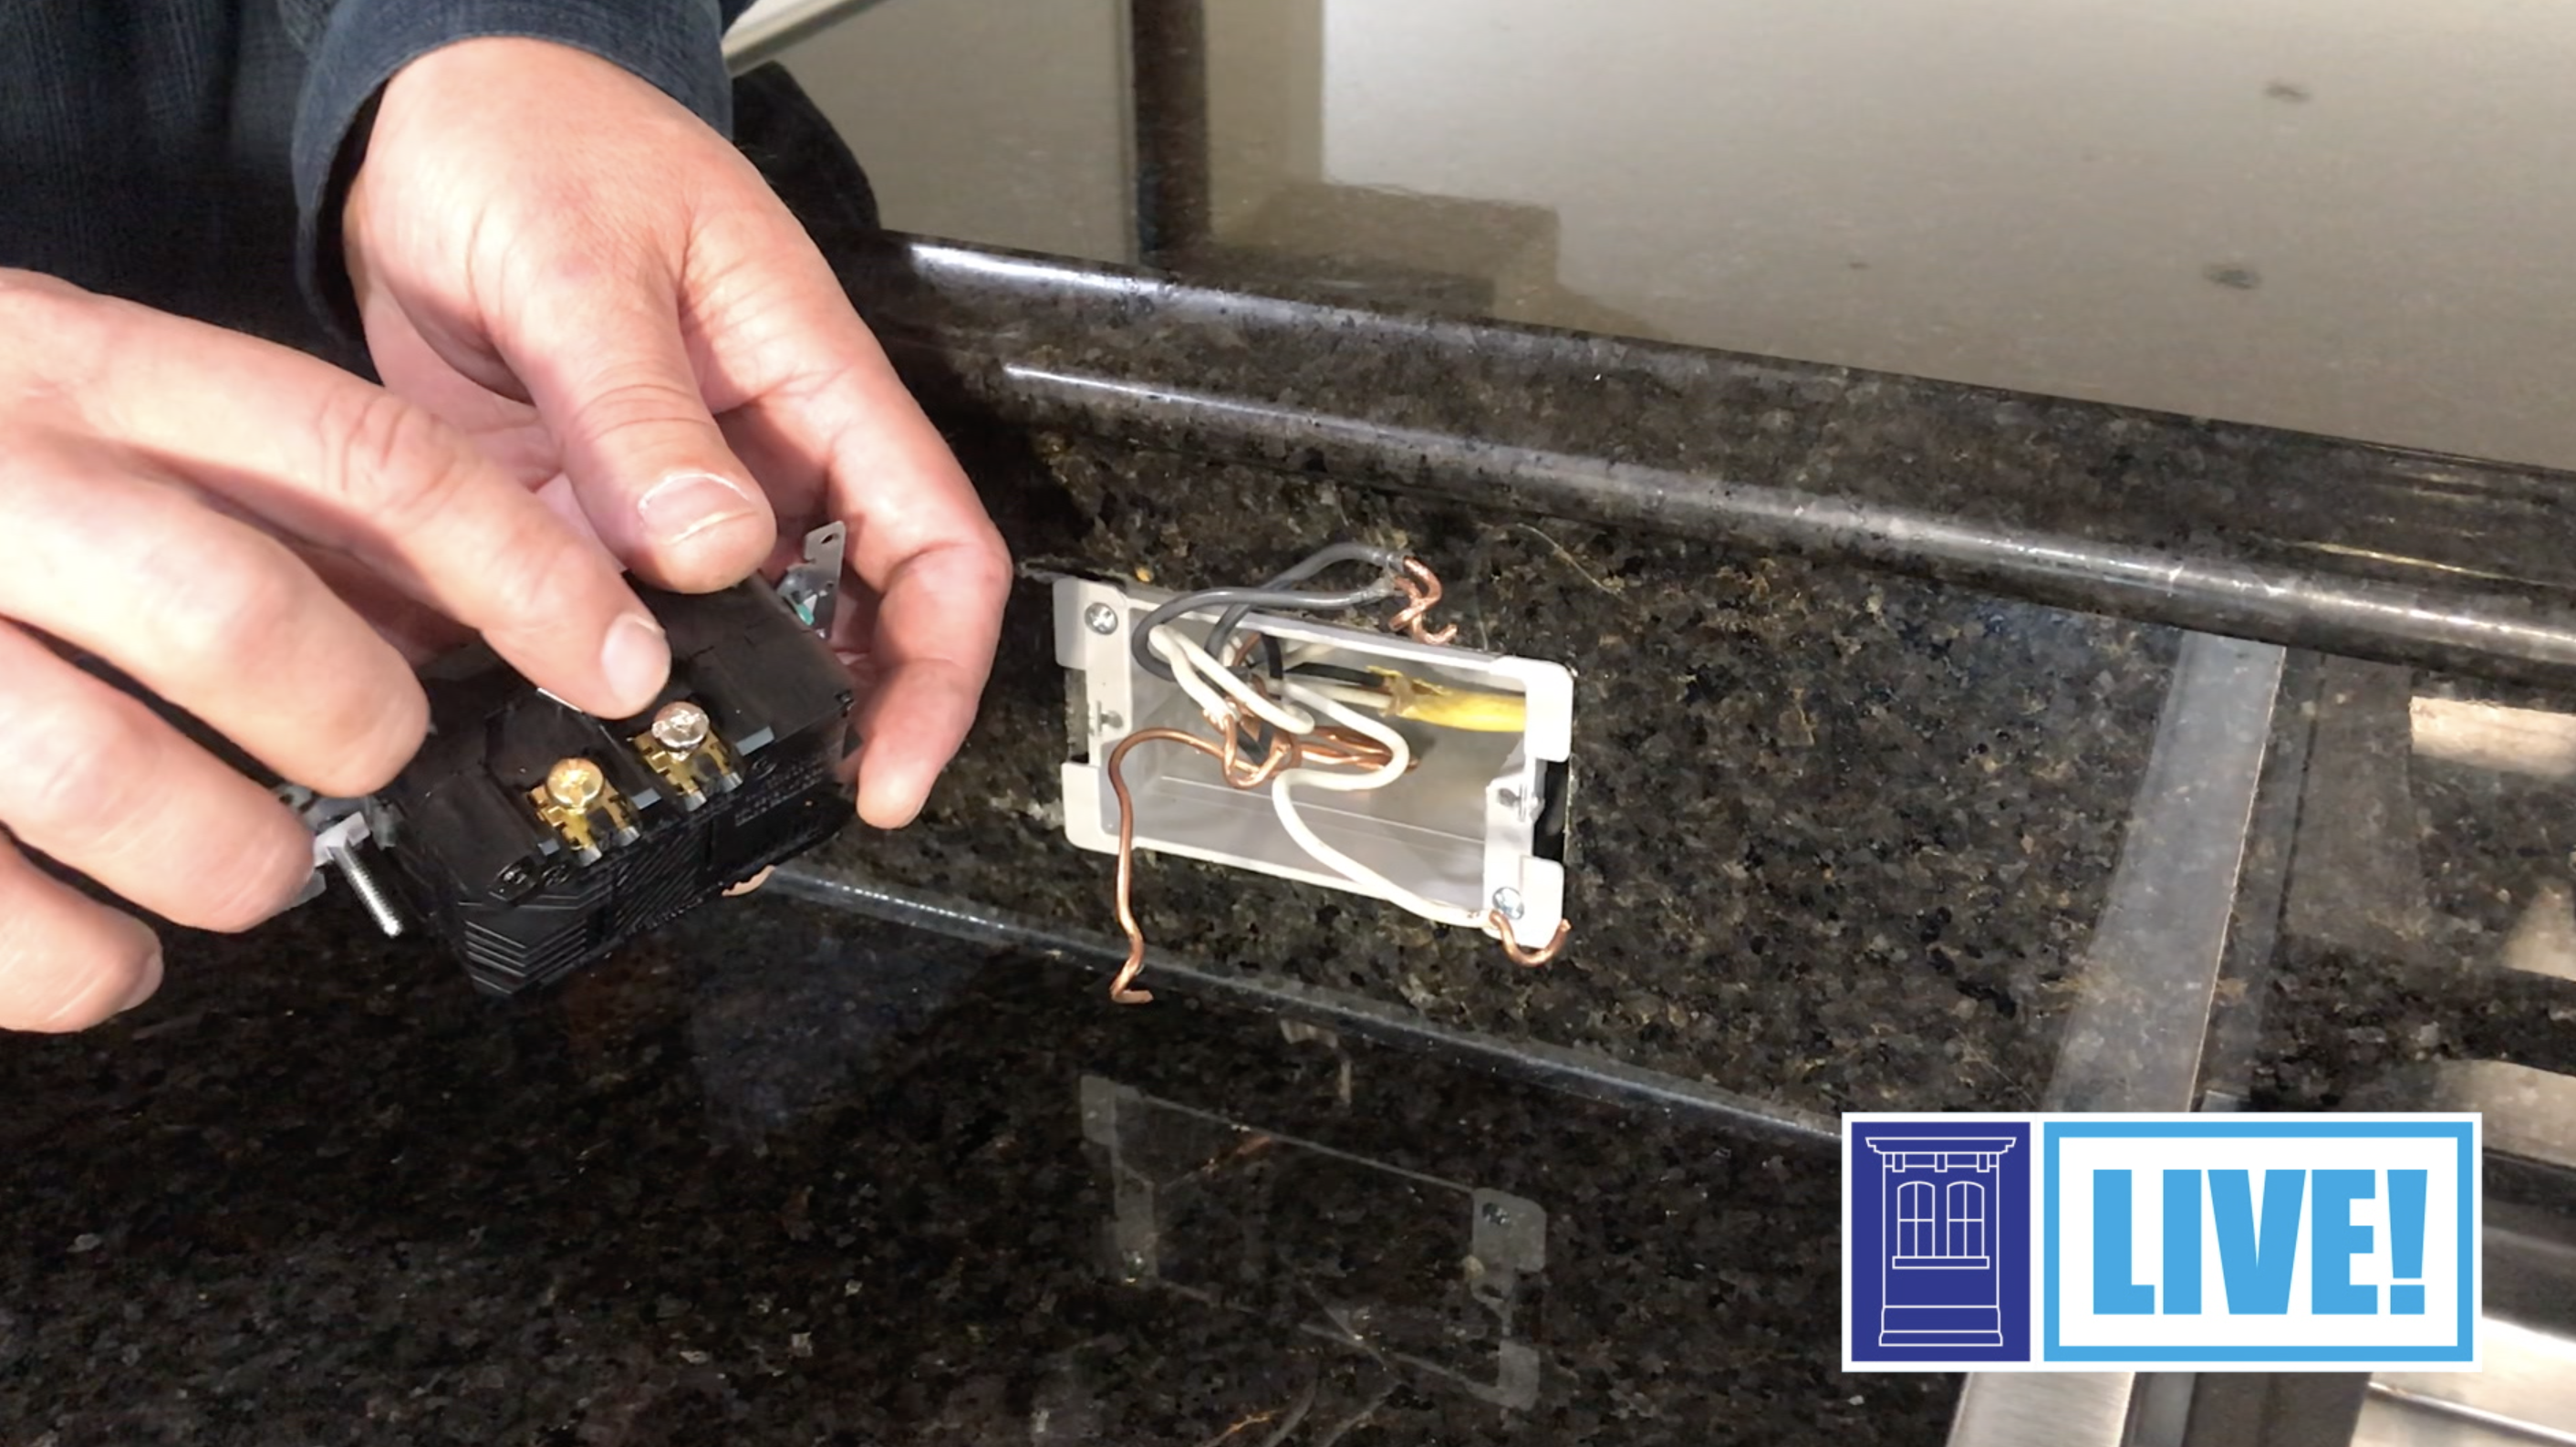 Master electrician Heath Eastman installs a USB outlet.